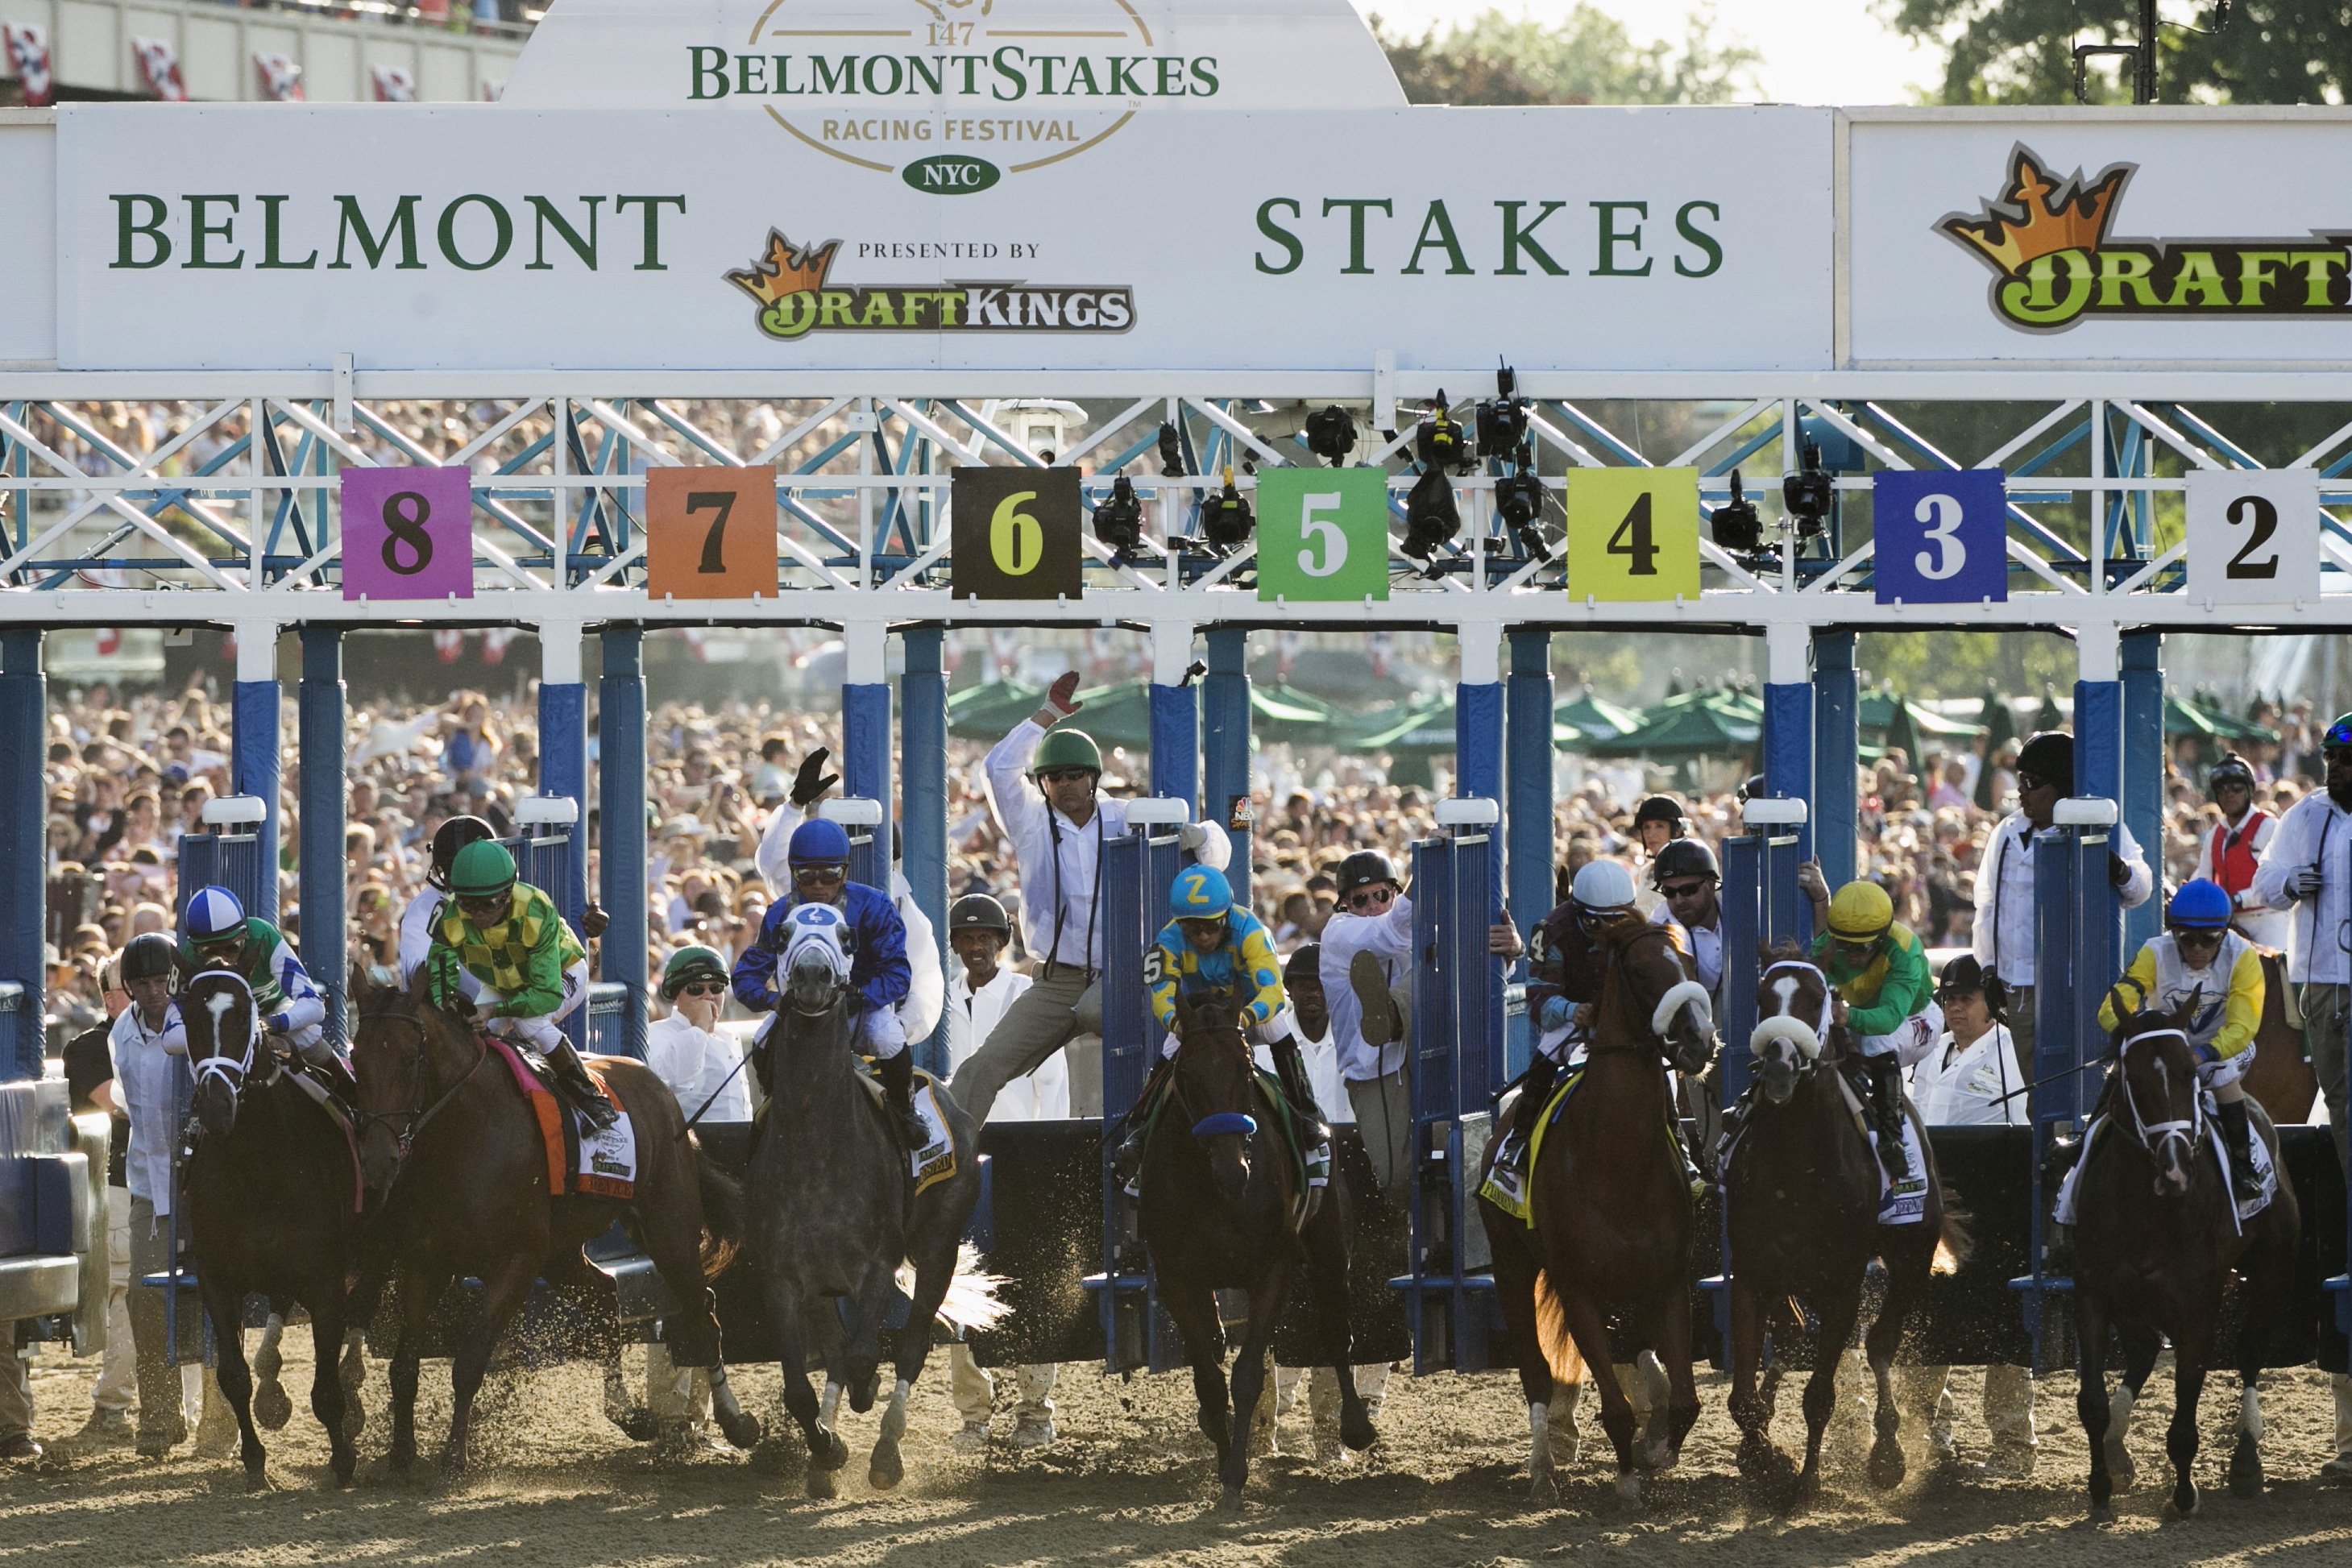 Jockey Victor Espinoza, aboard American Pharoah (C), takes off for the start of the 147th running of the Belmont Stakes as well as the Triple Crown, in Elmont, New York on June 6, 2015. Photo by Lucas Jackson/Reuters